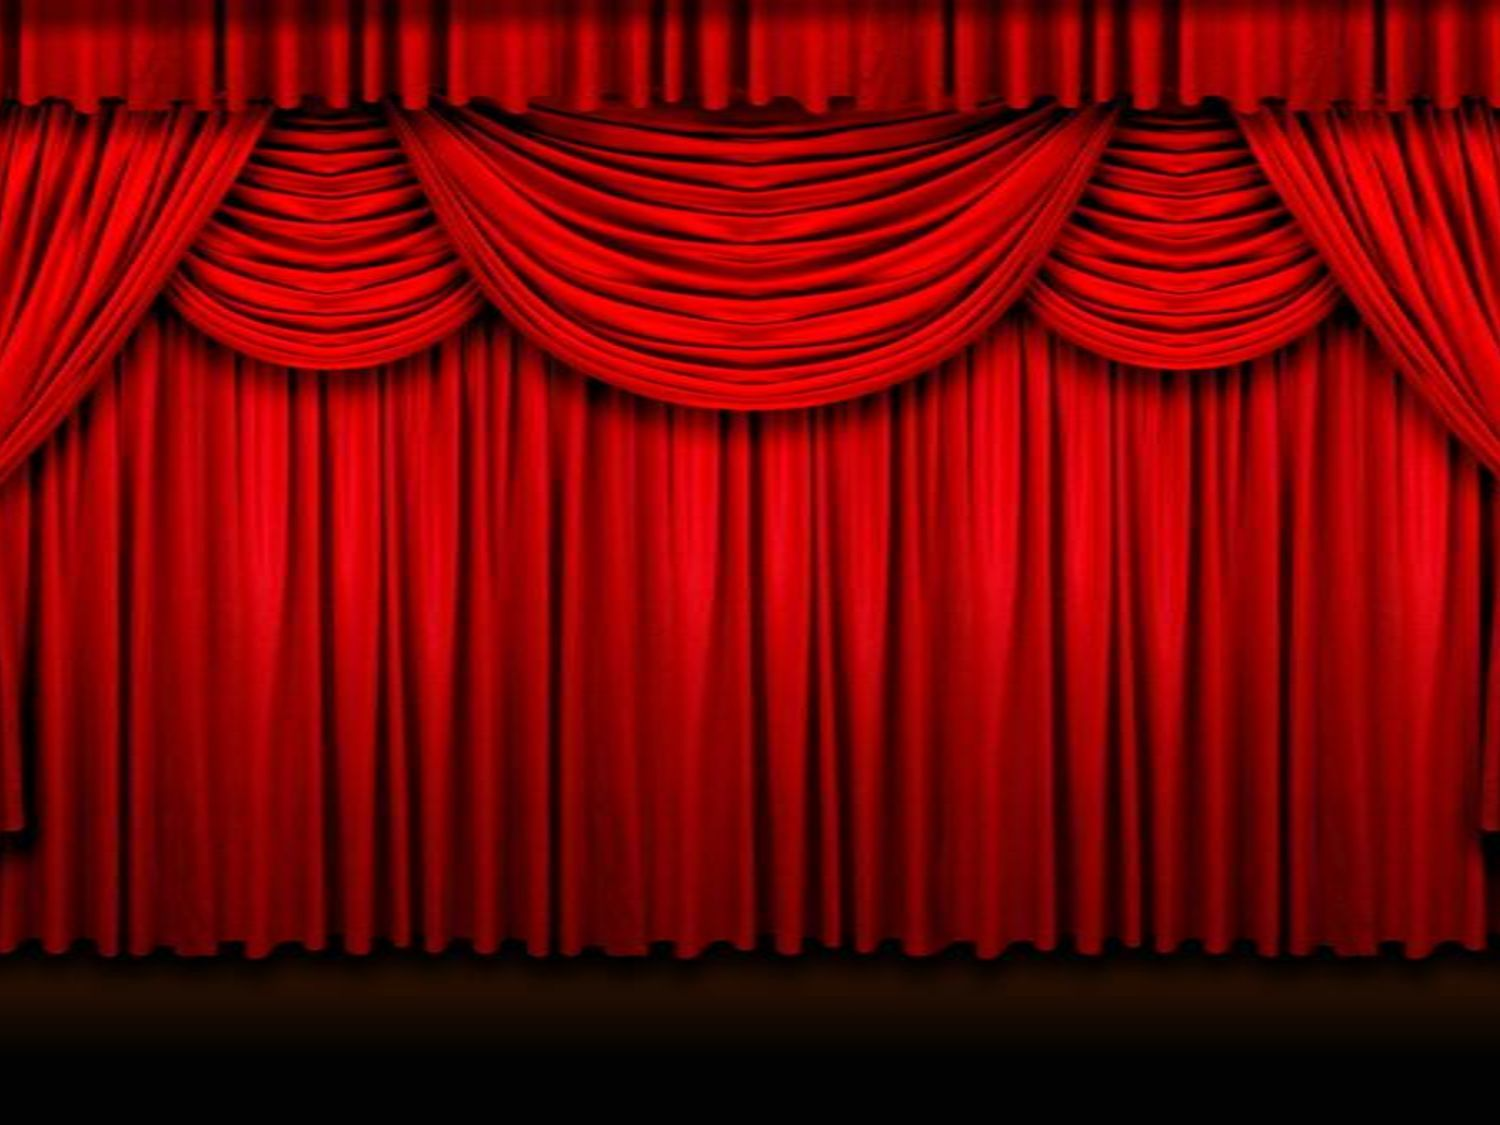 Blue stage curtains blue stage curtain vector free vector in - Theater Curtain 7 Blue Theater Curtains 11915 Curtains